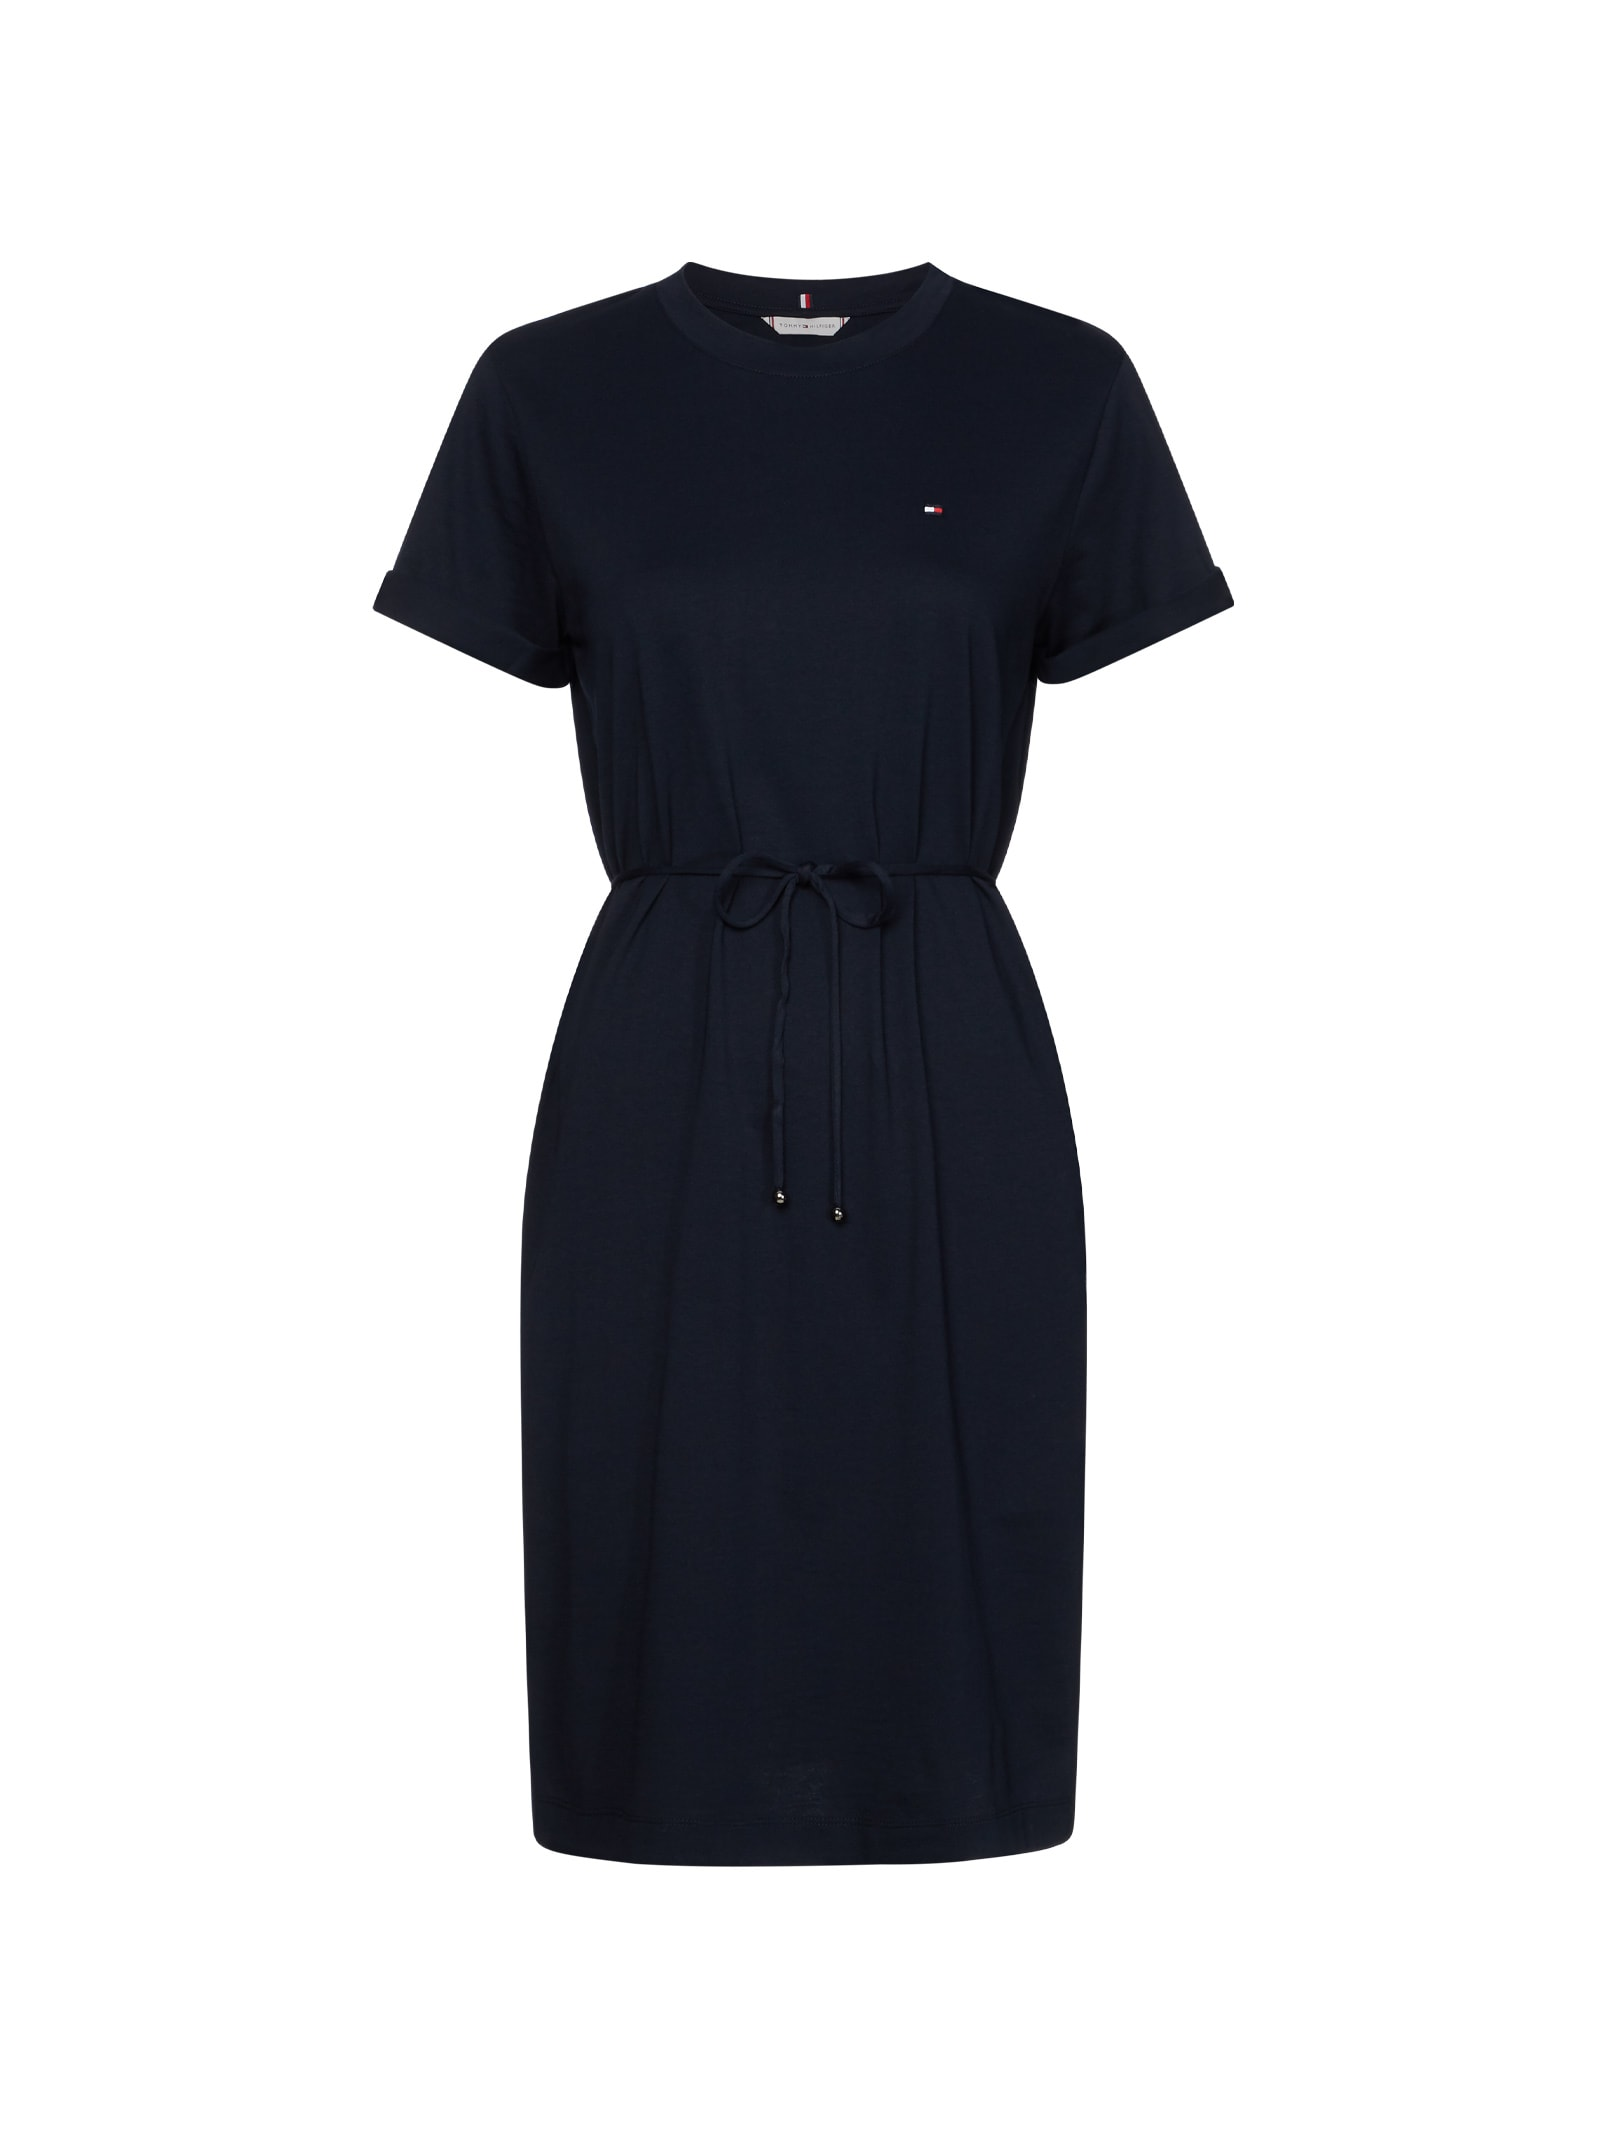 Buy Tommy Hilfiger Tommy Hilfiger T-shirt Dress online, shop Tommy Hilfiger with free shipping